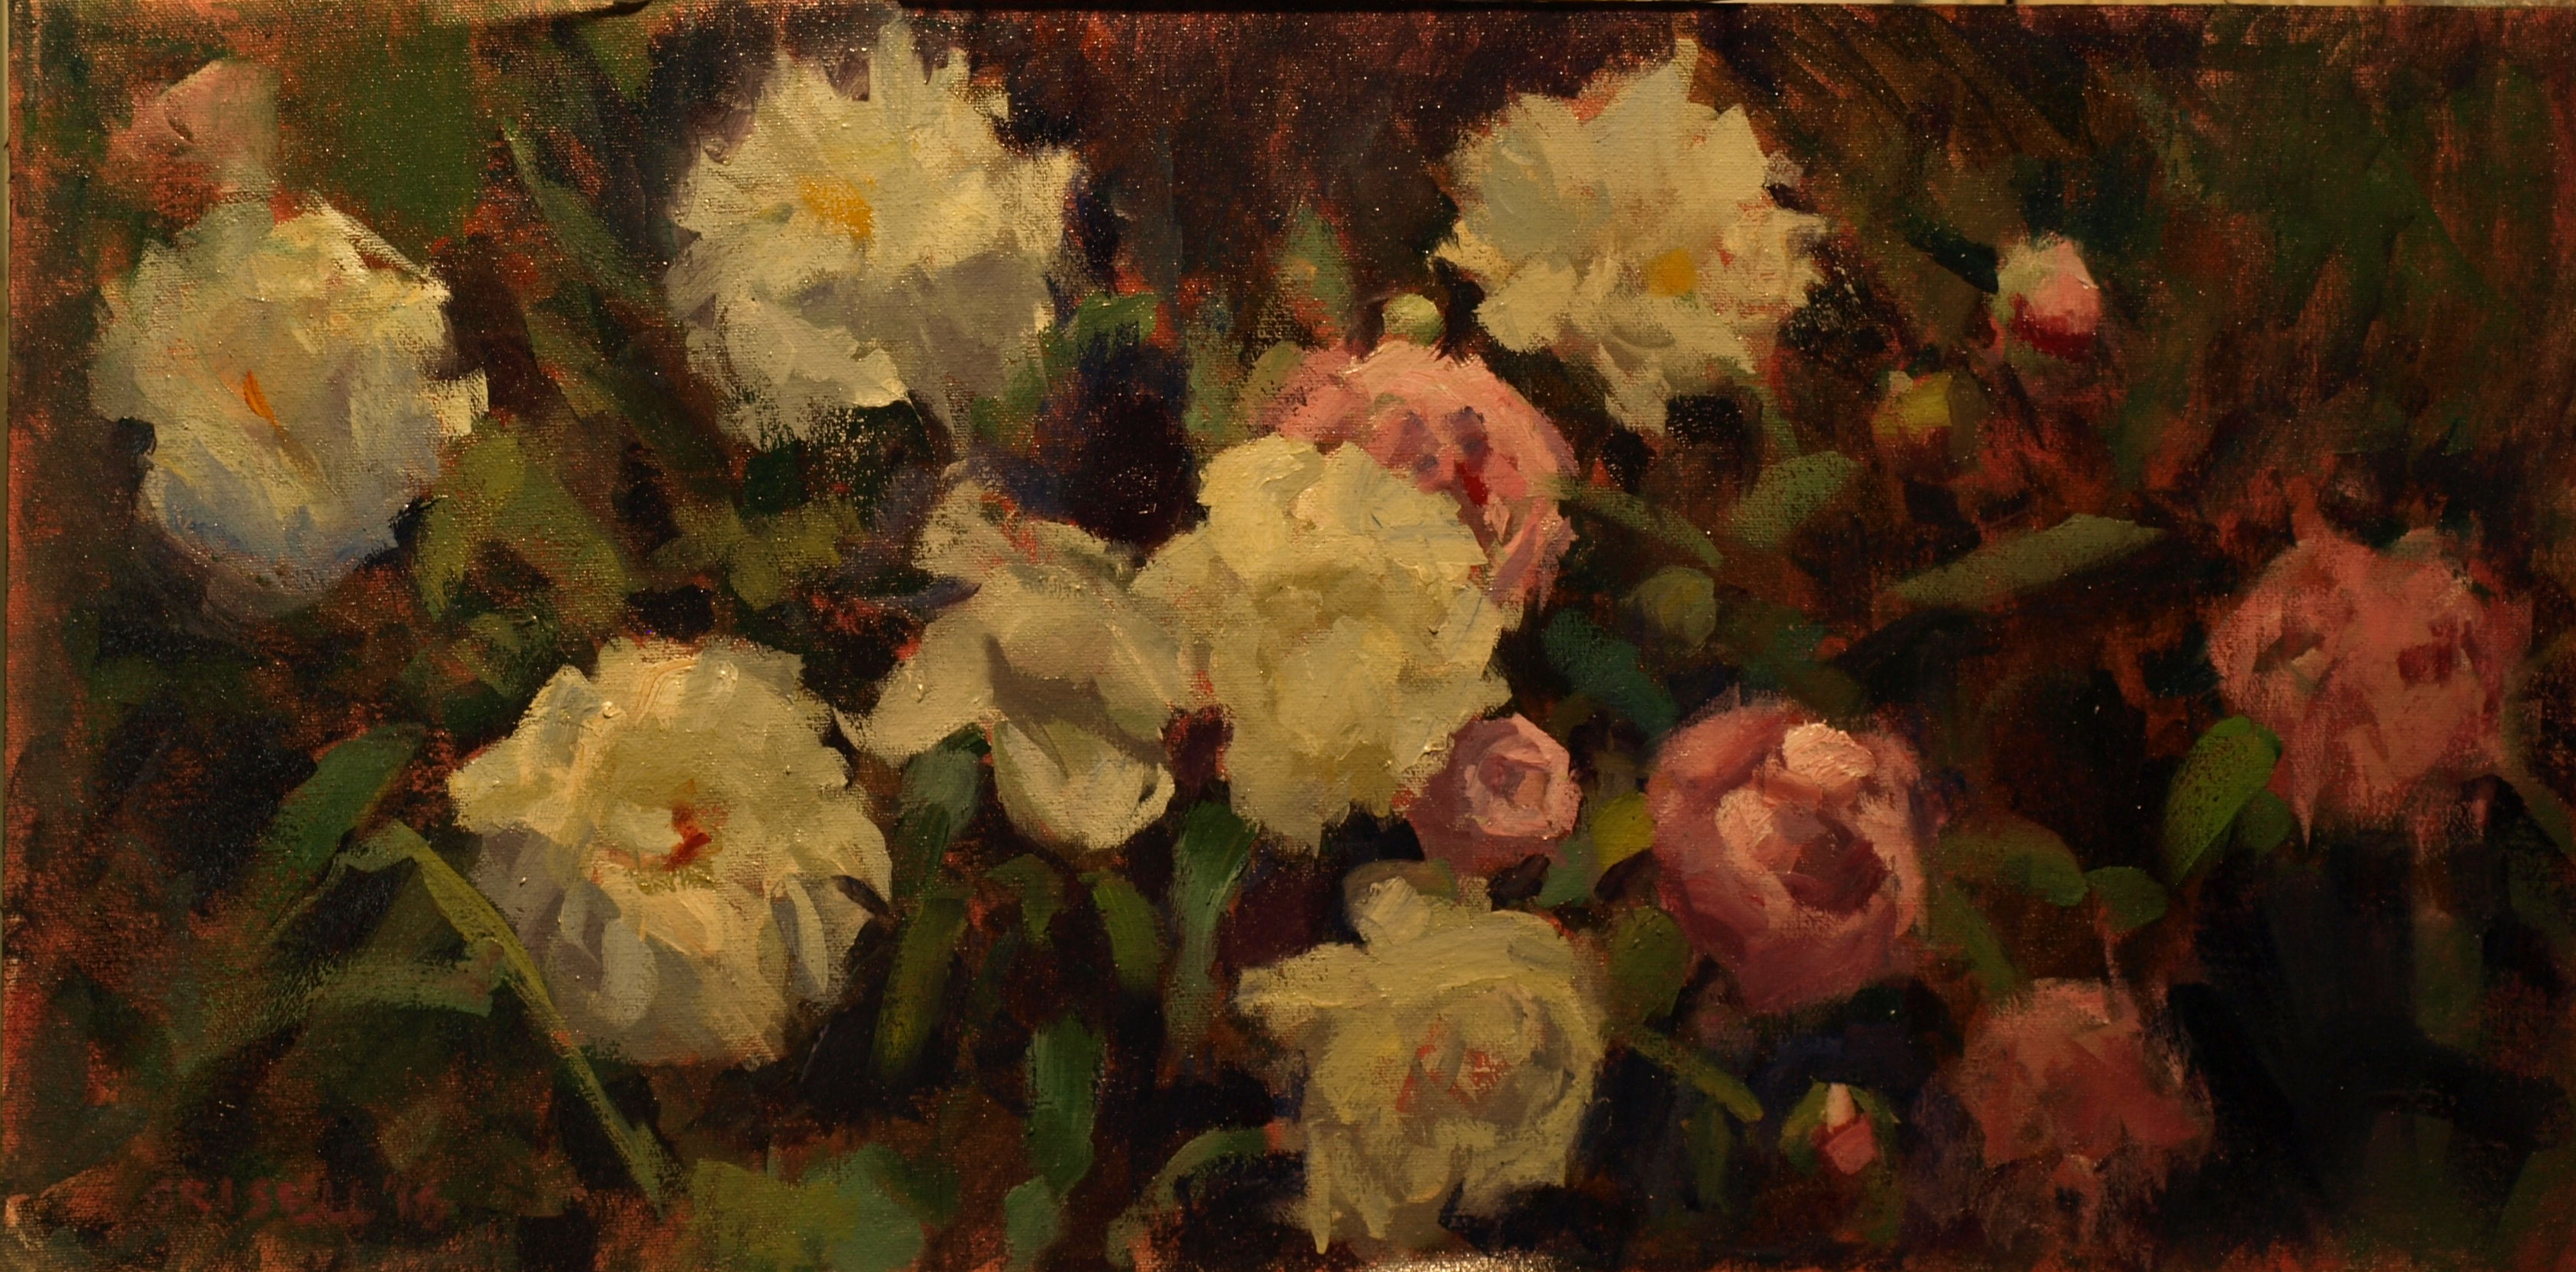 Peony Bed, Oil on Canvas on Panel, 12 x 24 Inches, by Susan Grisell, $500